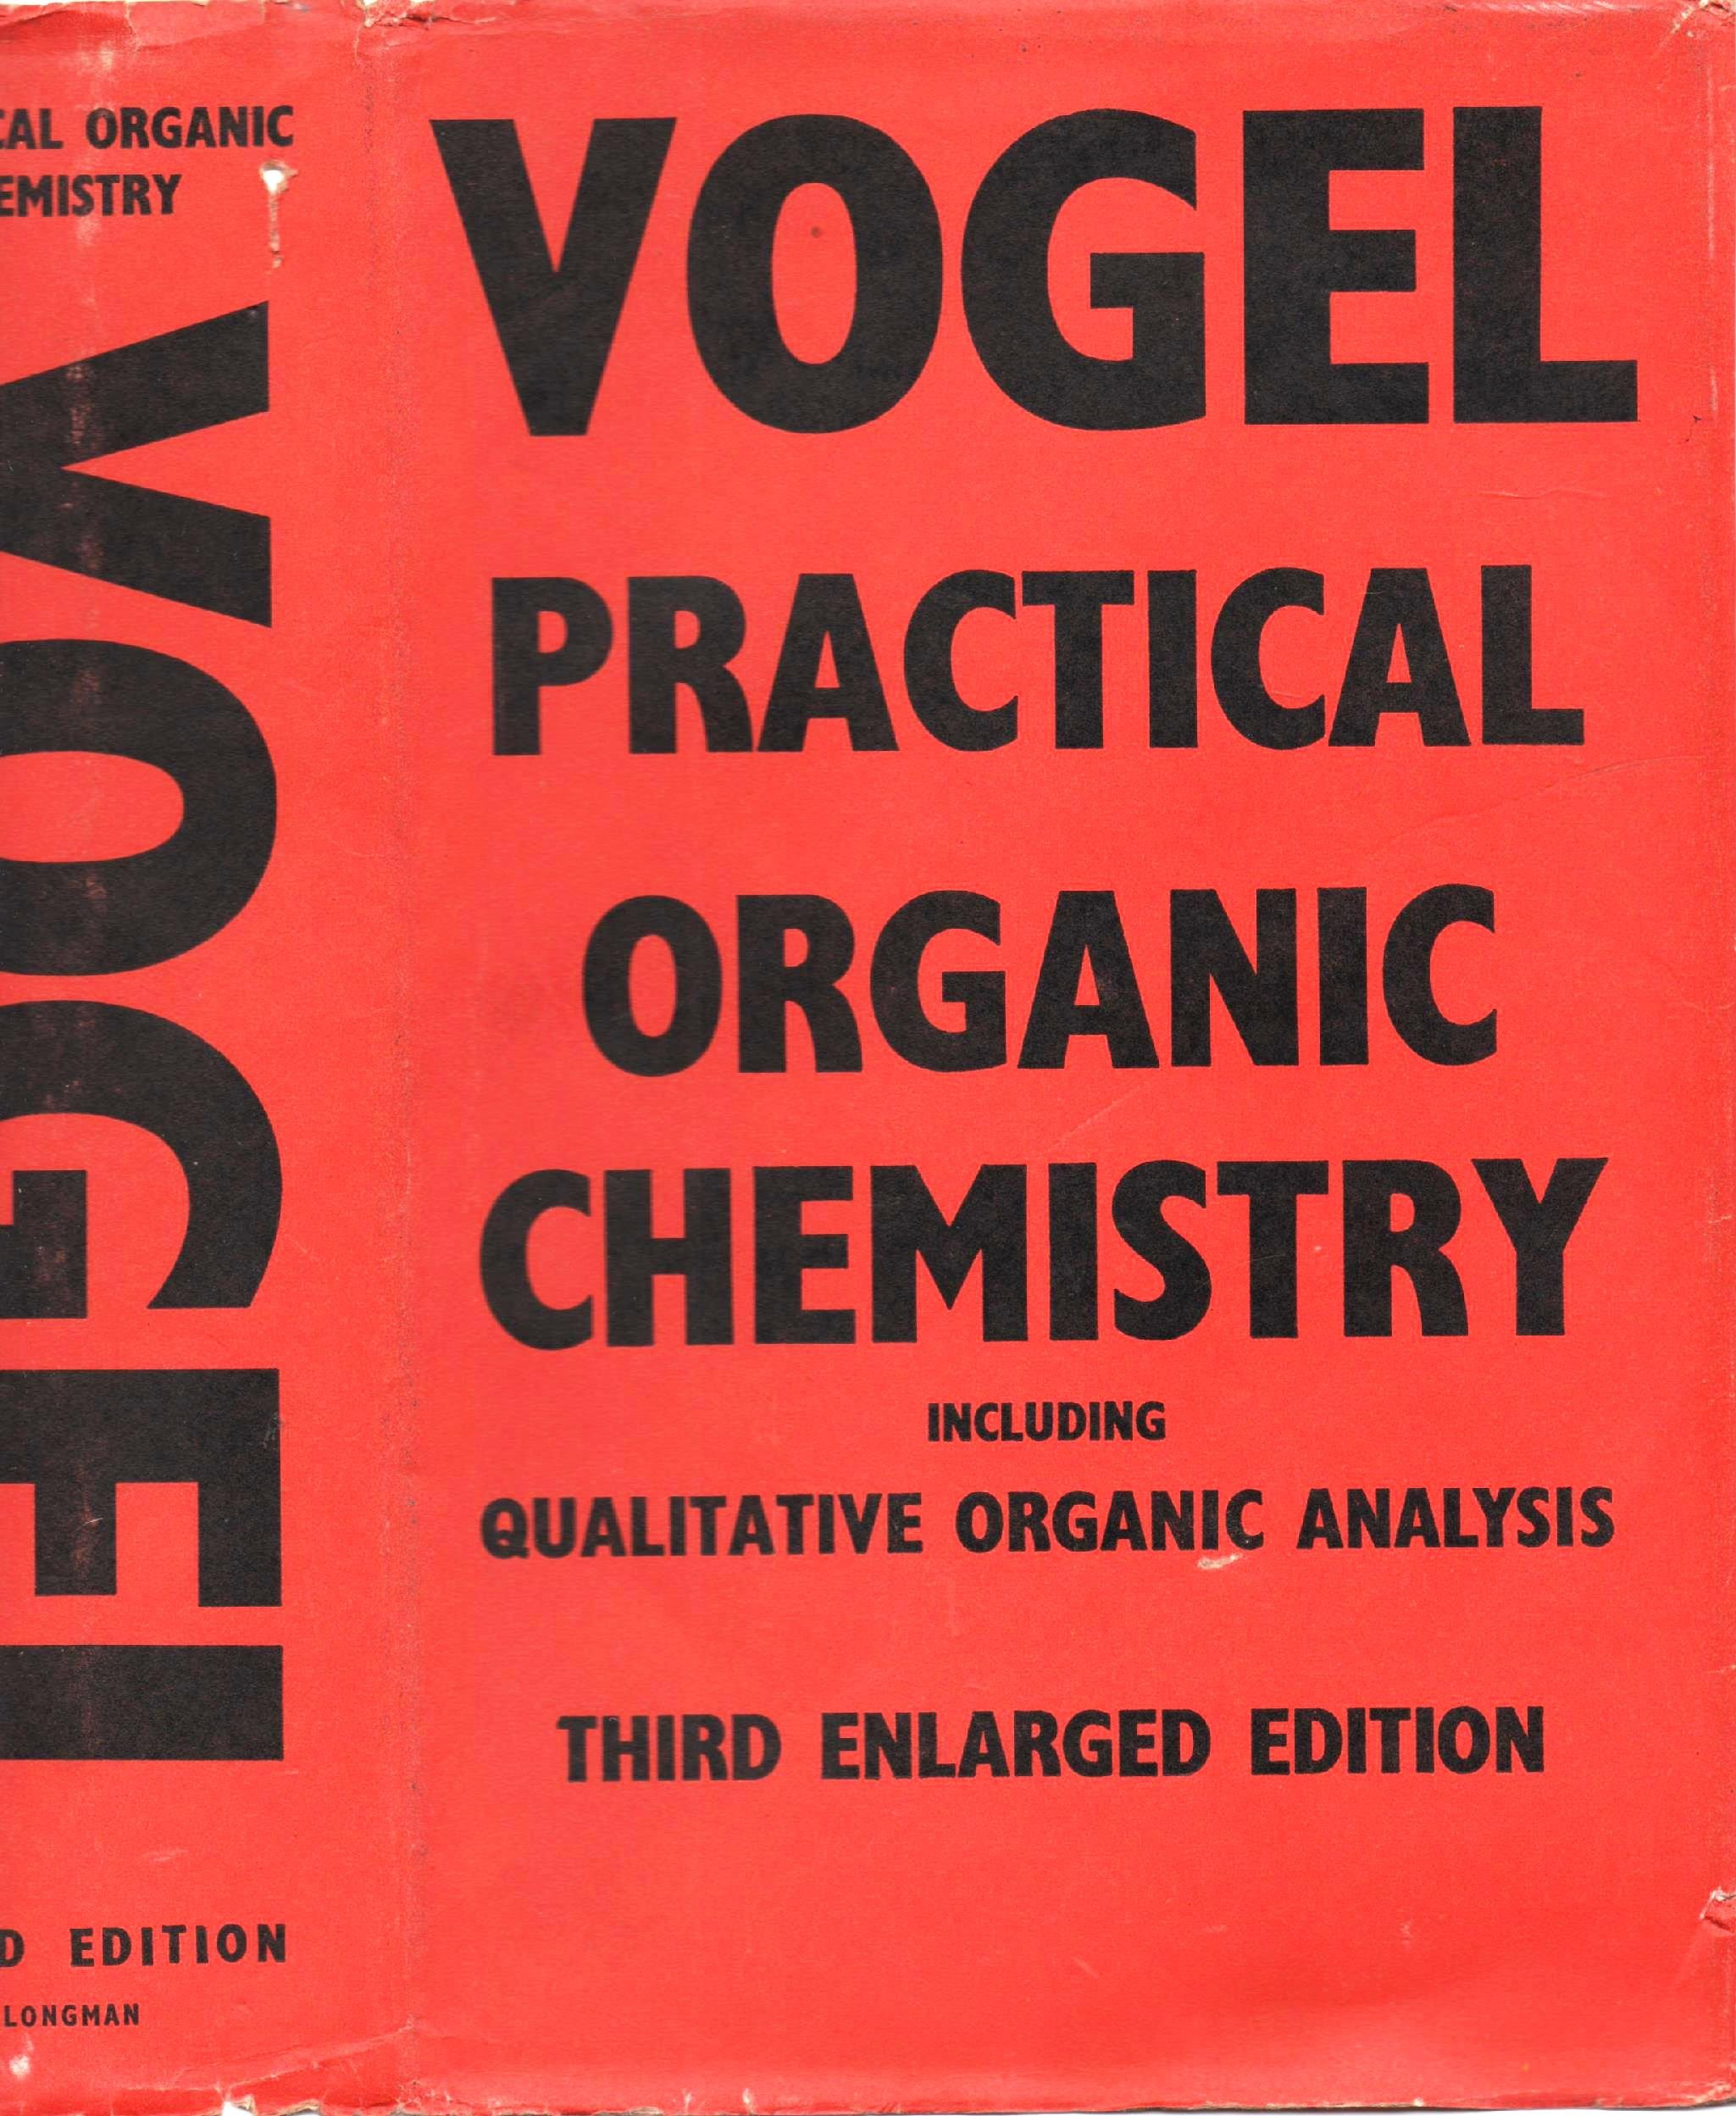 A Text Book Of Practical Organic Chemistry Including Qualitative Analysis Third Edition Arthur Israel Vogel 9780582442450 Amazon Books